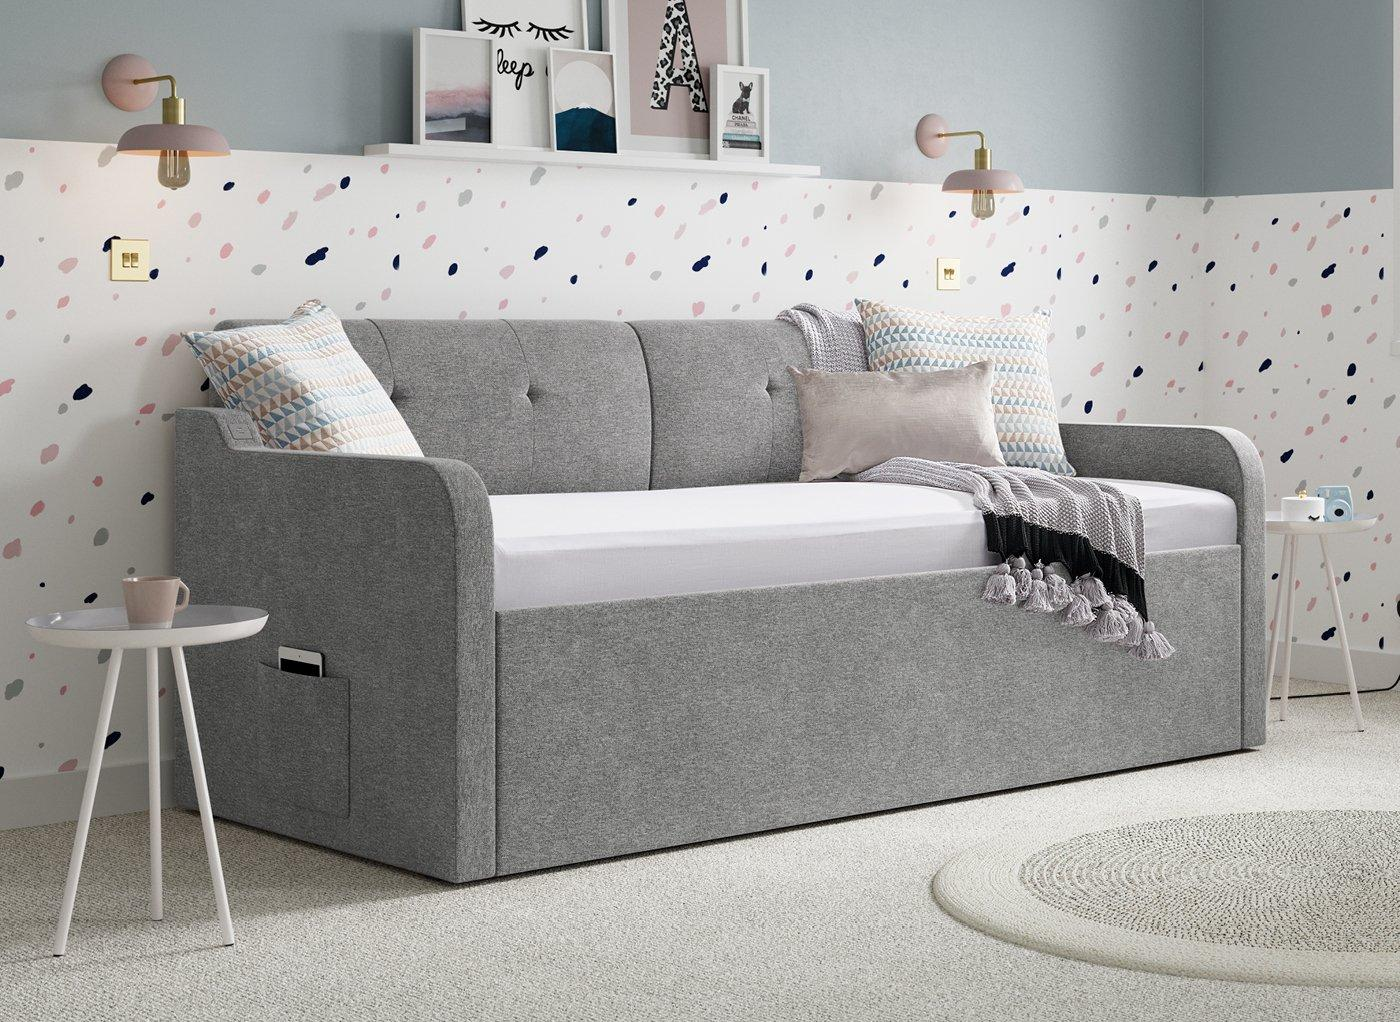 elwood-daybed-with-usb-charging